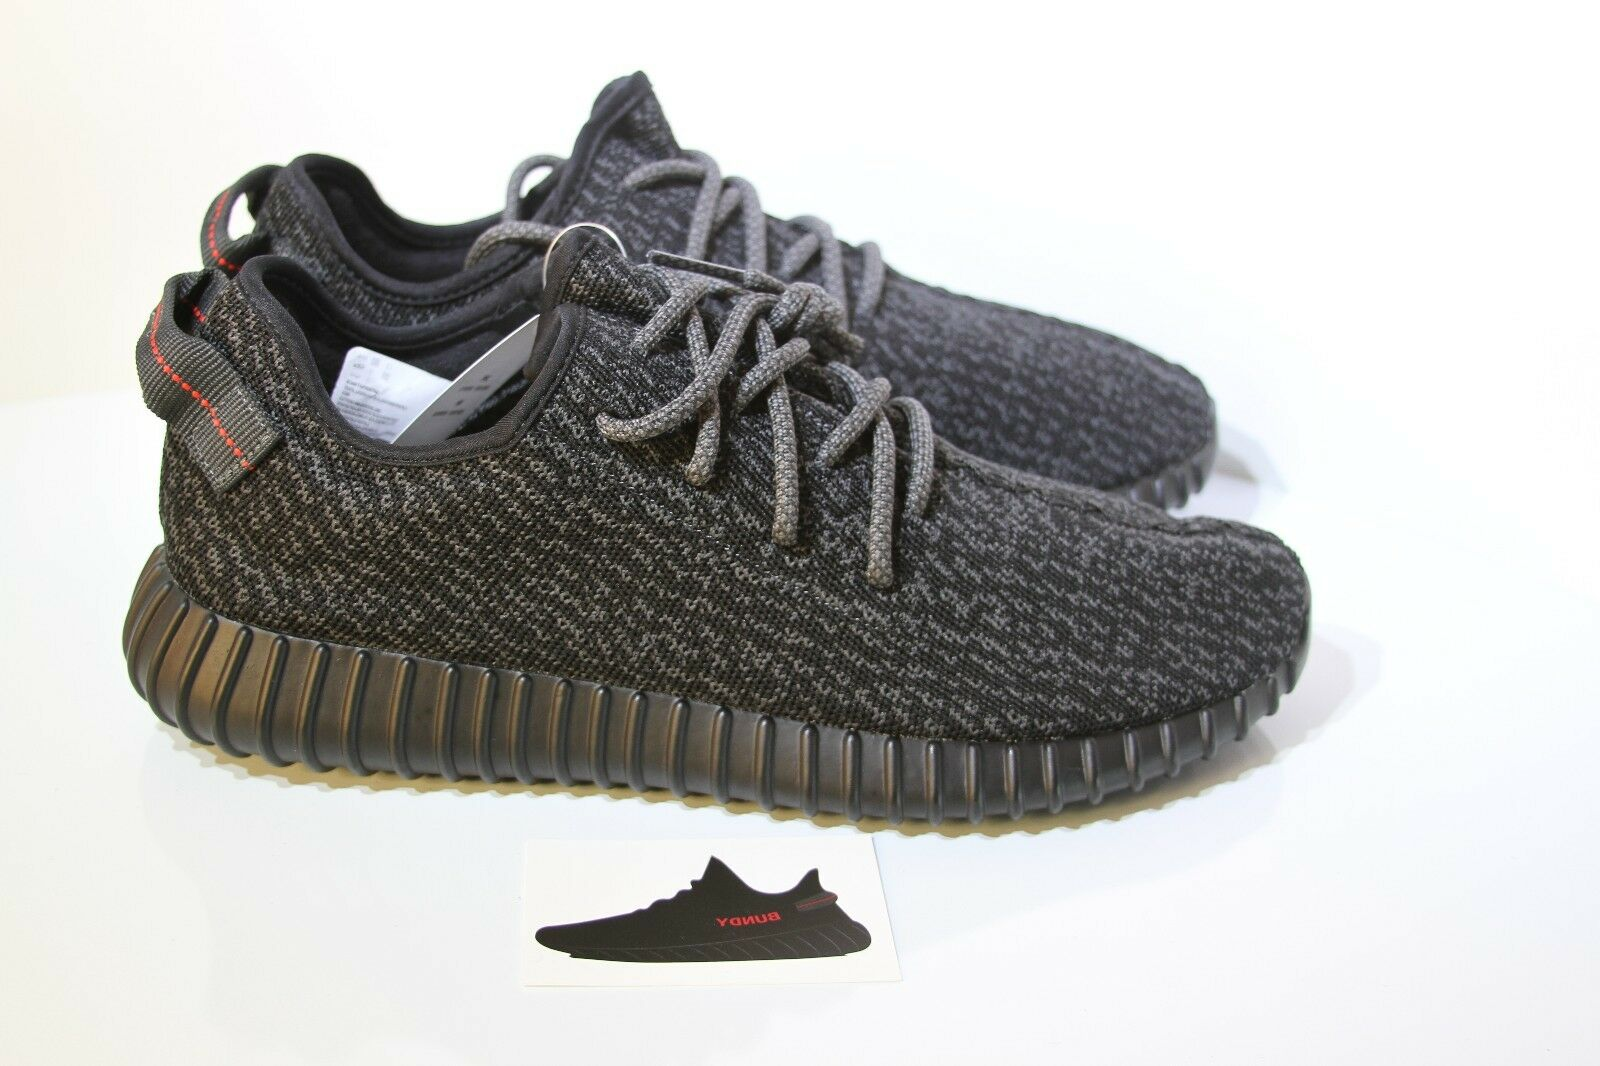 ADIDAS YEEZY BOOST 350 LOW US Size 12  PIRATE BLACK V1 2015 DEADSTOCK